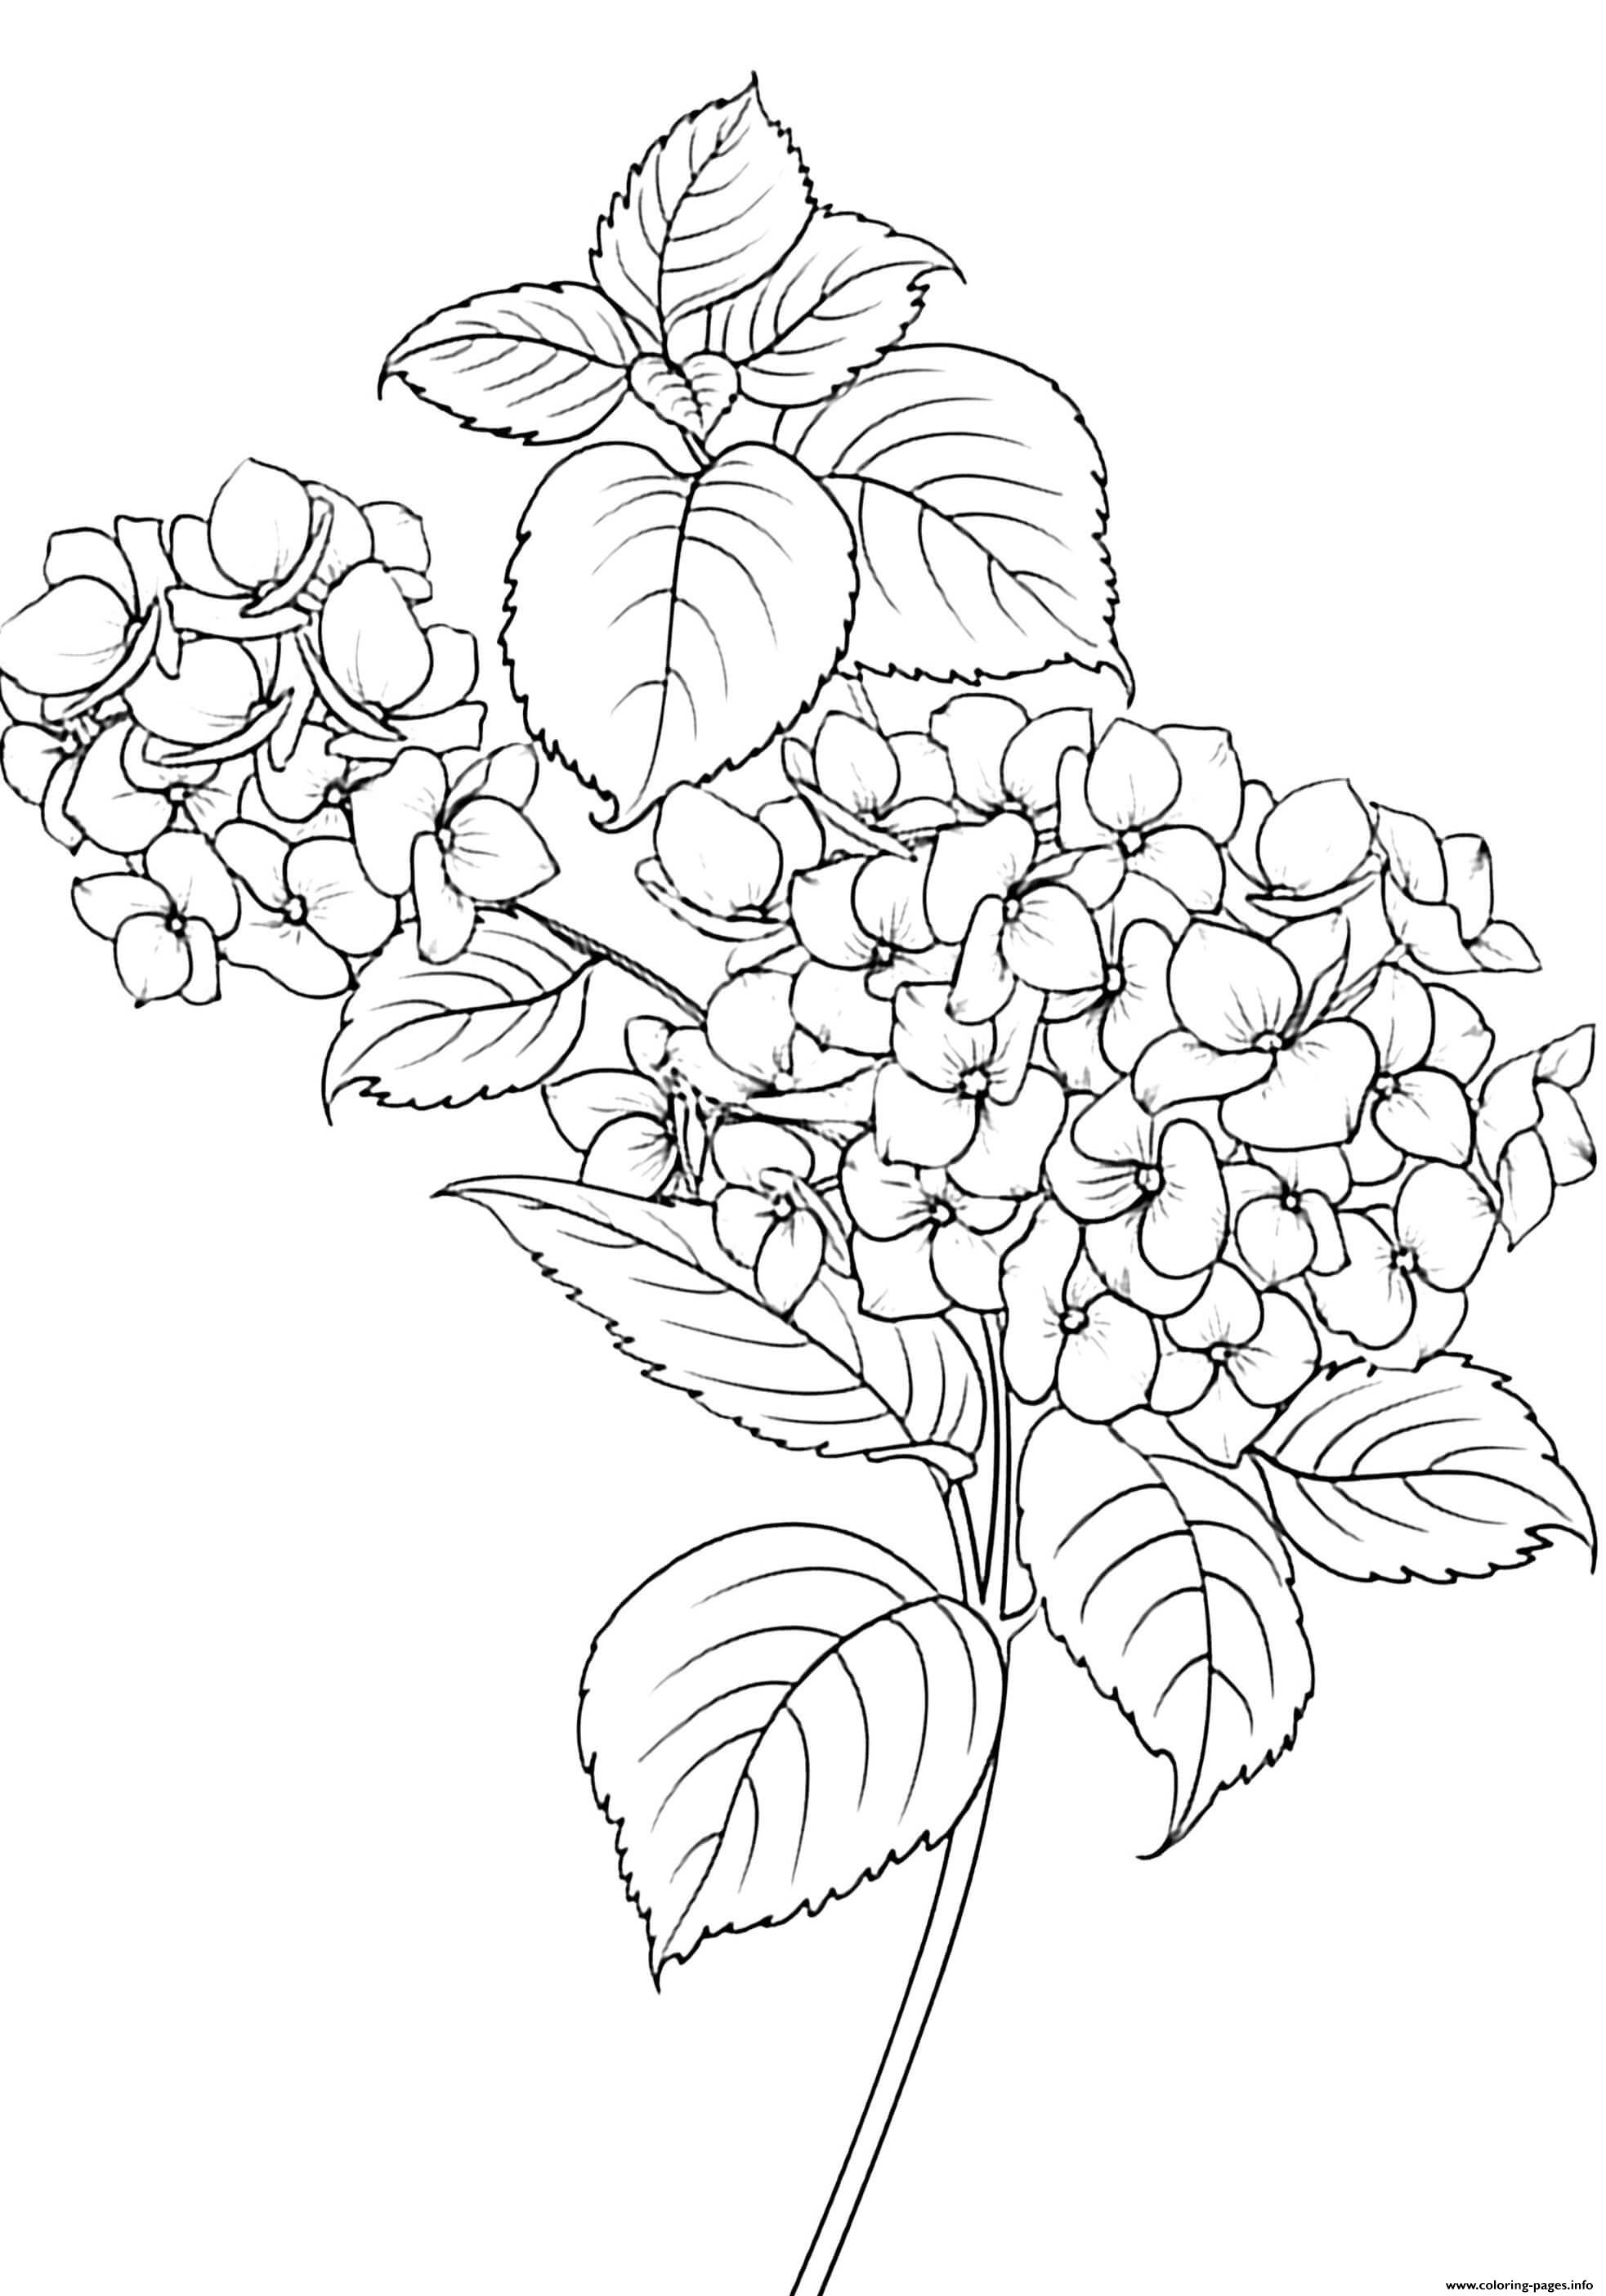 Elegant Flowers And Leaves Coloring Pages Printable